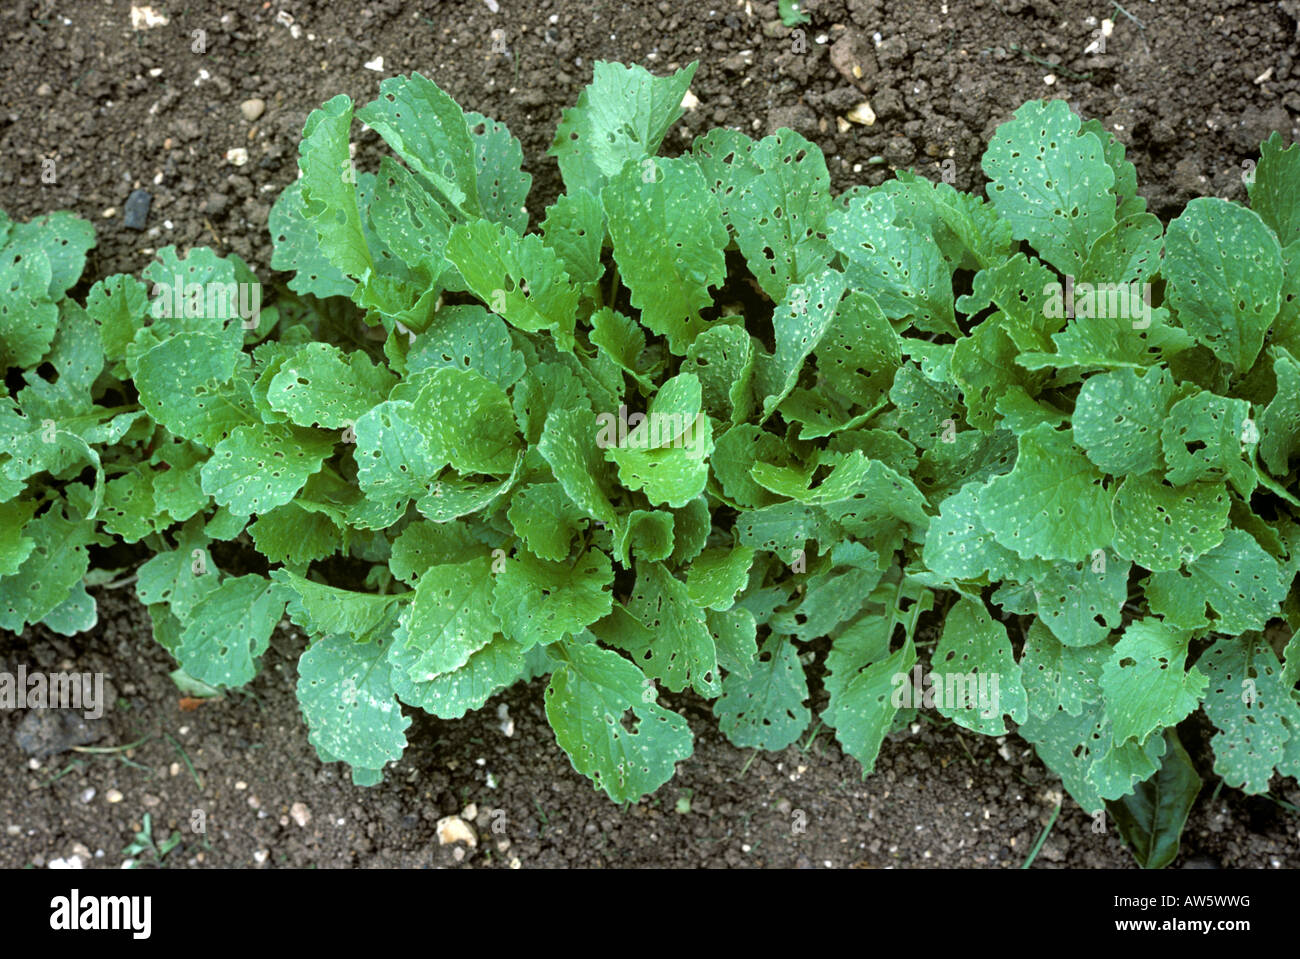 Flea beetle Phyllotreta spp feeding damage to radish plants - Stock Image